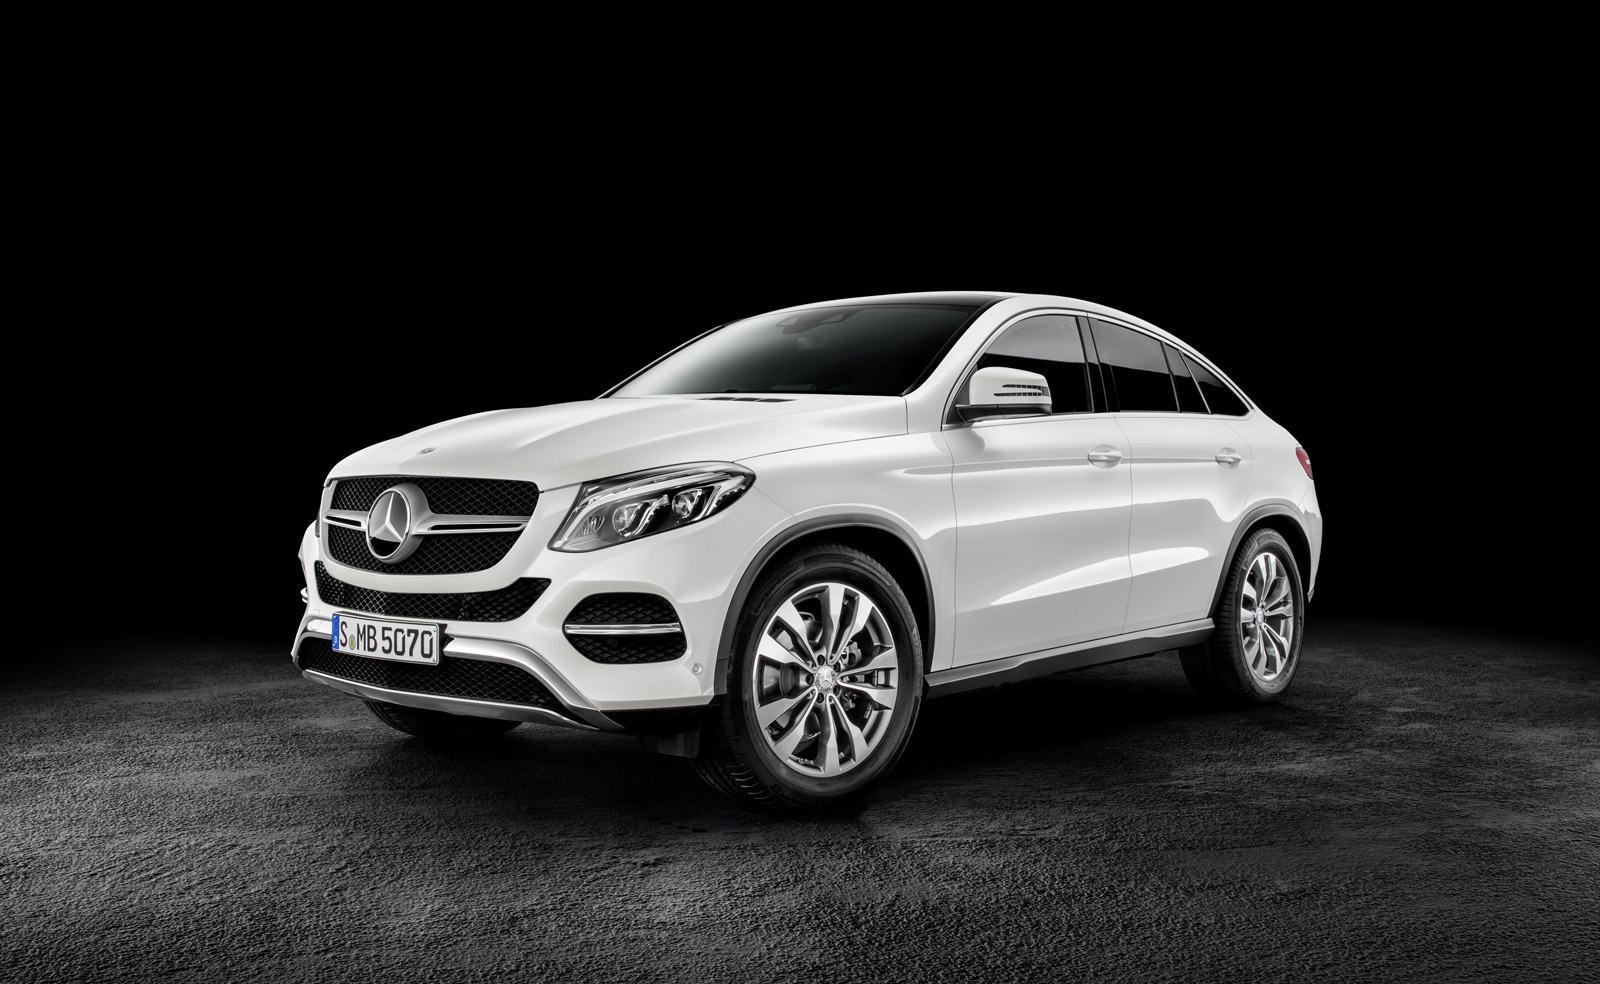 New And Used Mercedes-Benz GLE Class: Prices, Photos